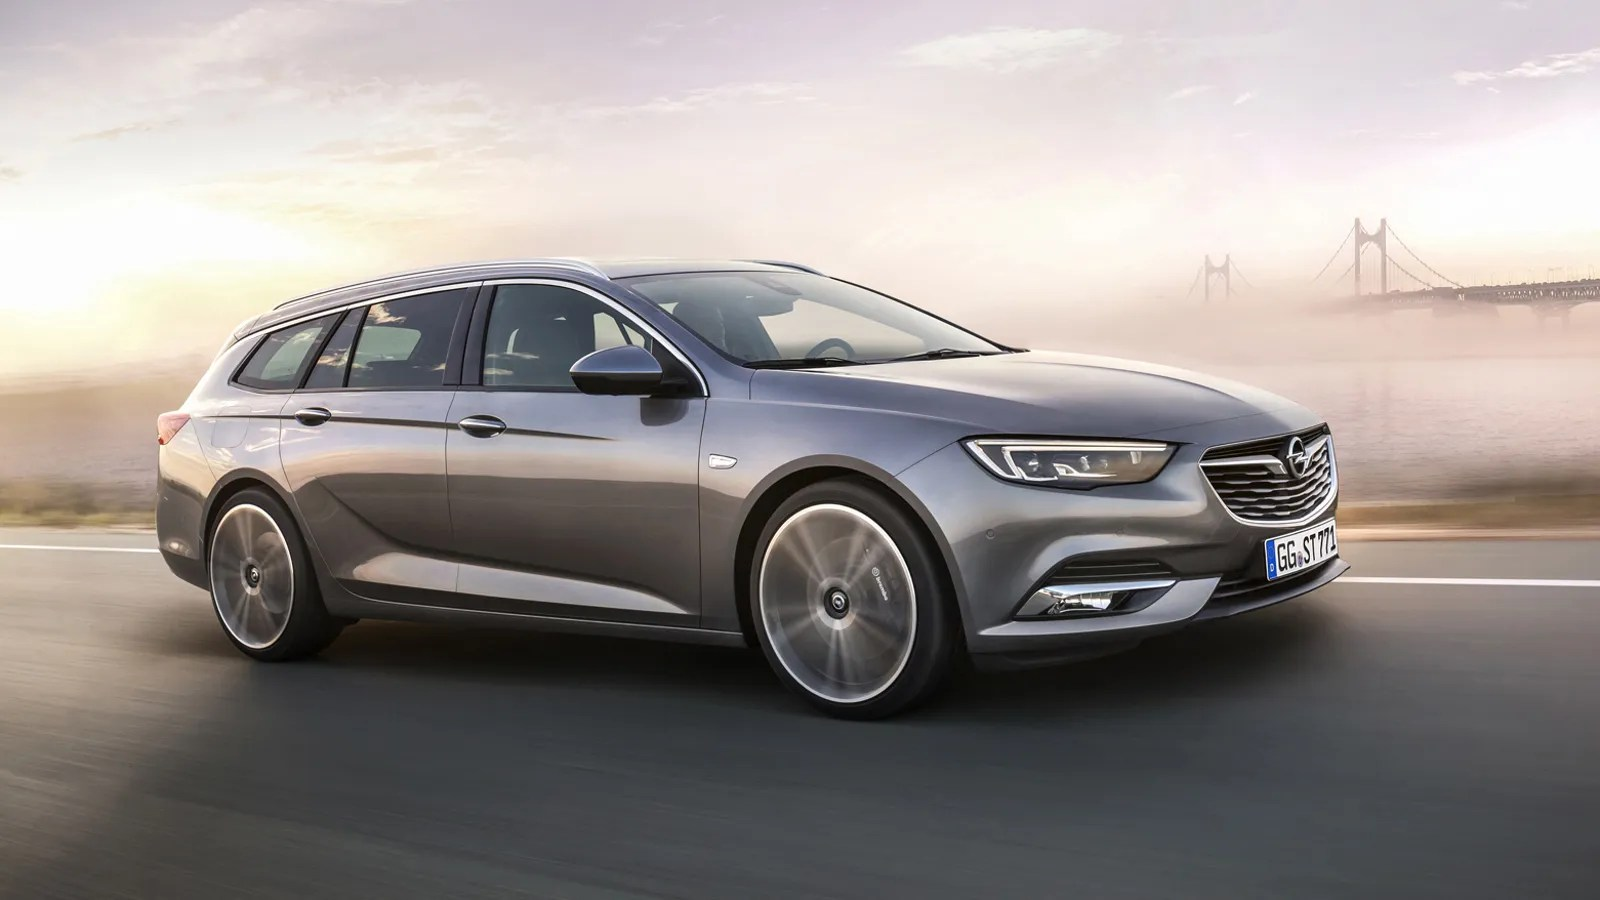 Vauxhall Insignia 2018 The 2017 Opel Insignia Wagon Will Make You Want To Buy A Buick